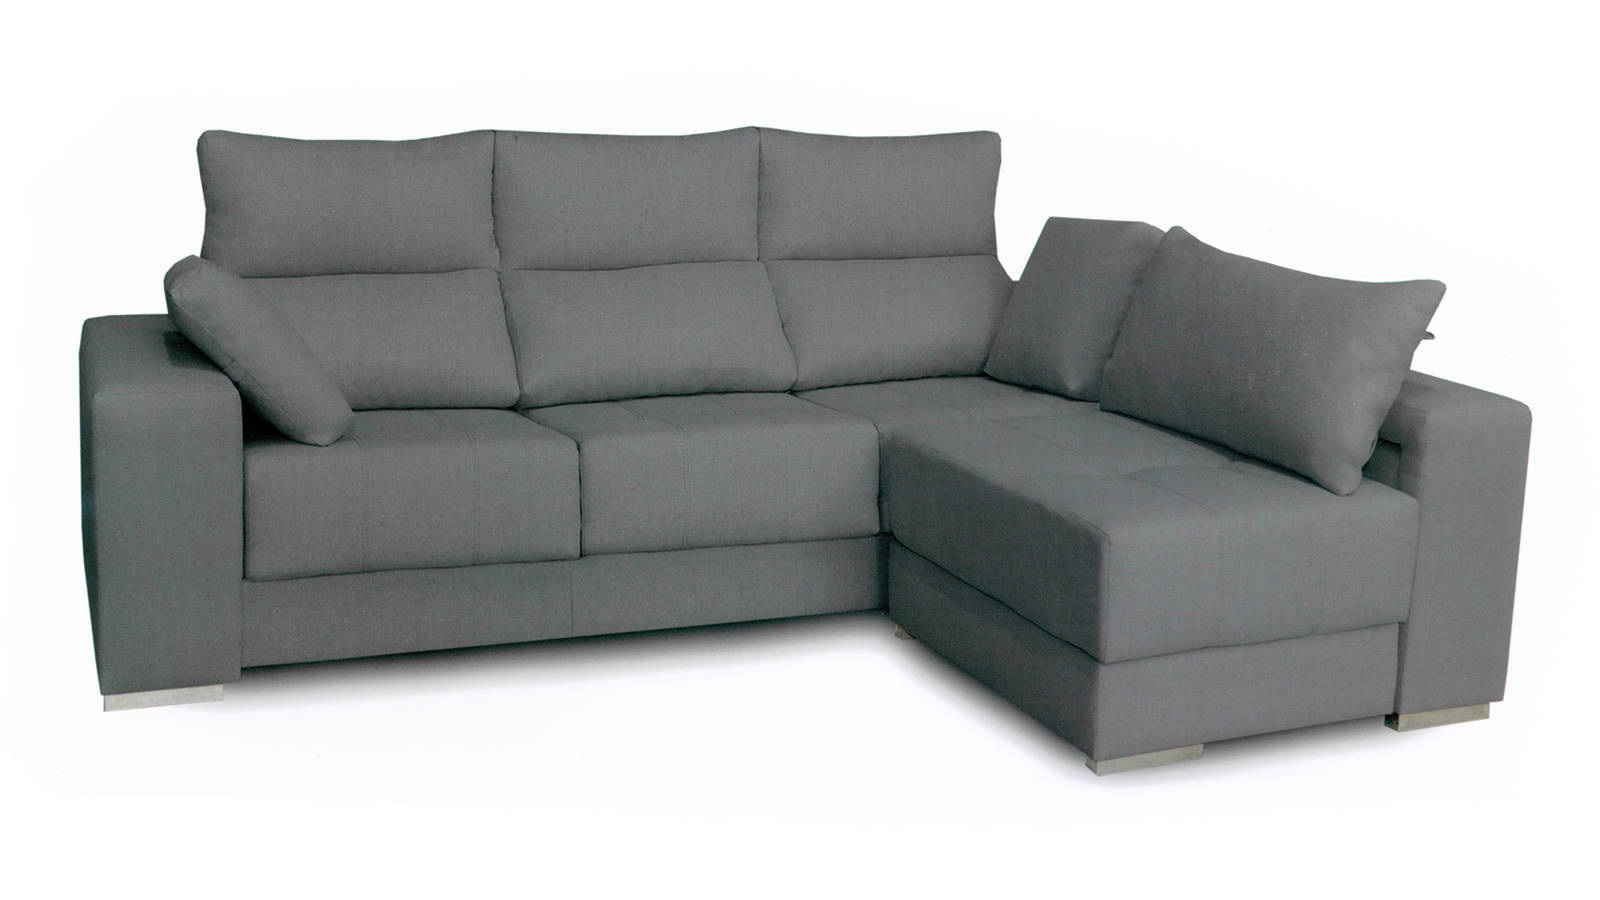 Ofertas muebles piso completo interesting affordable - Amuebla tu piso completo ...